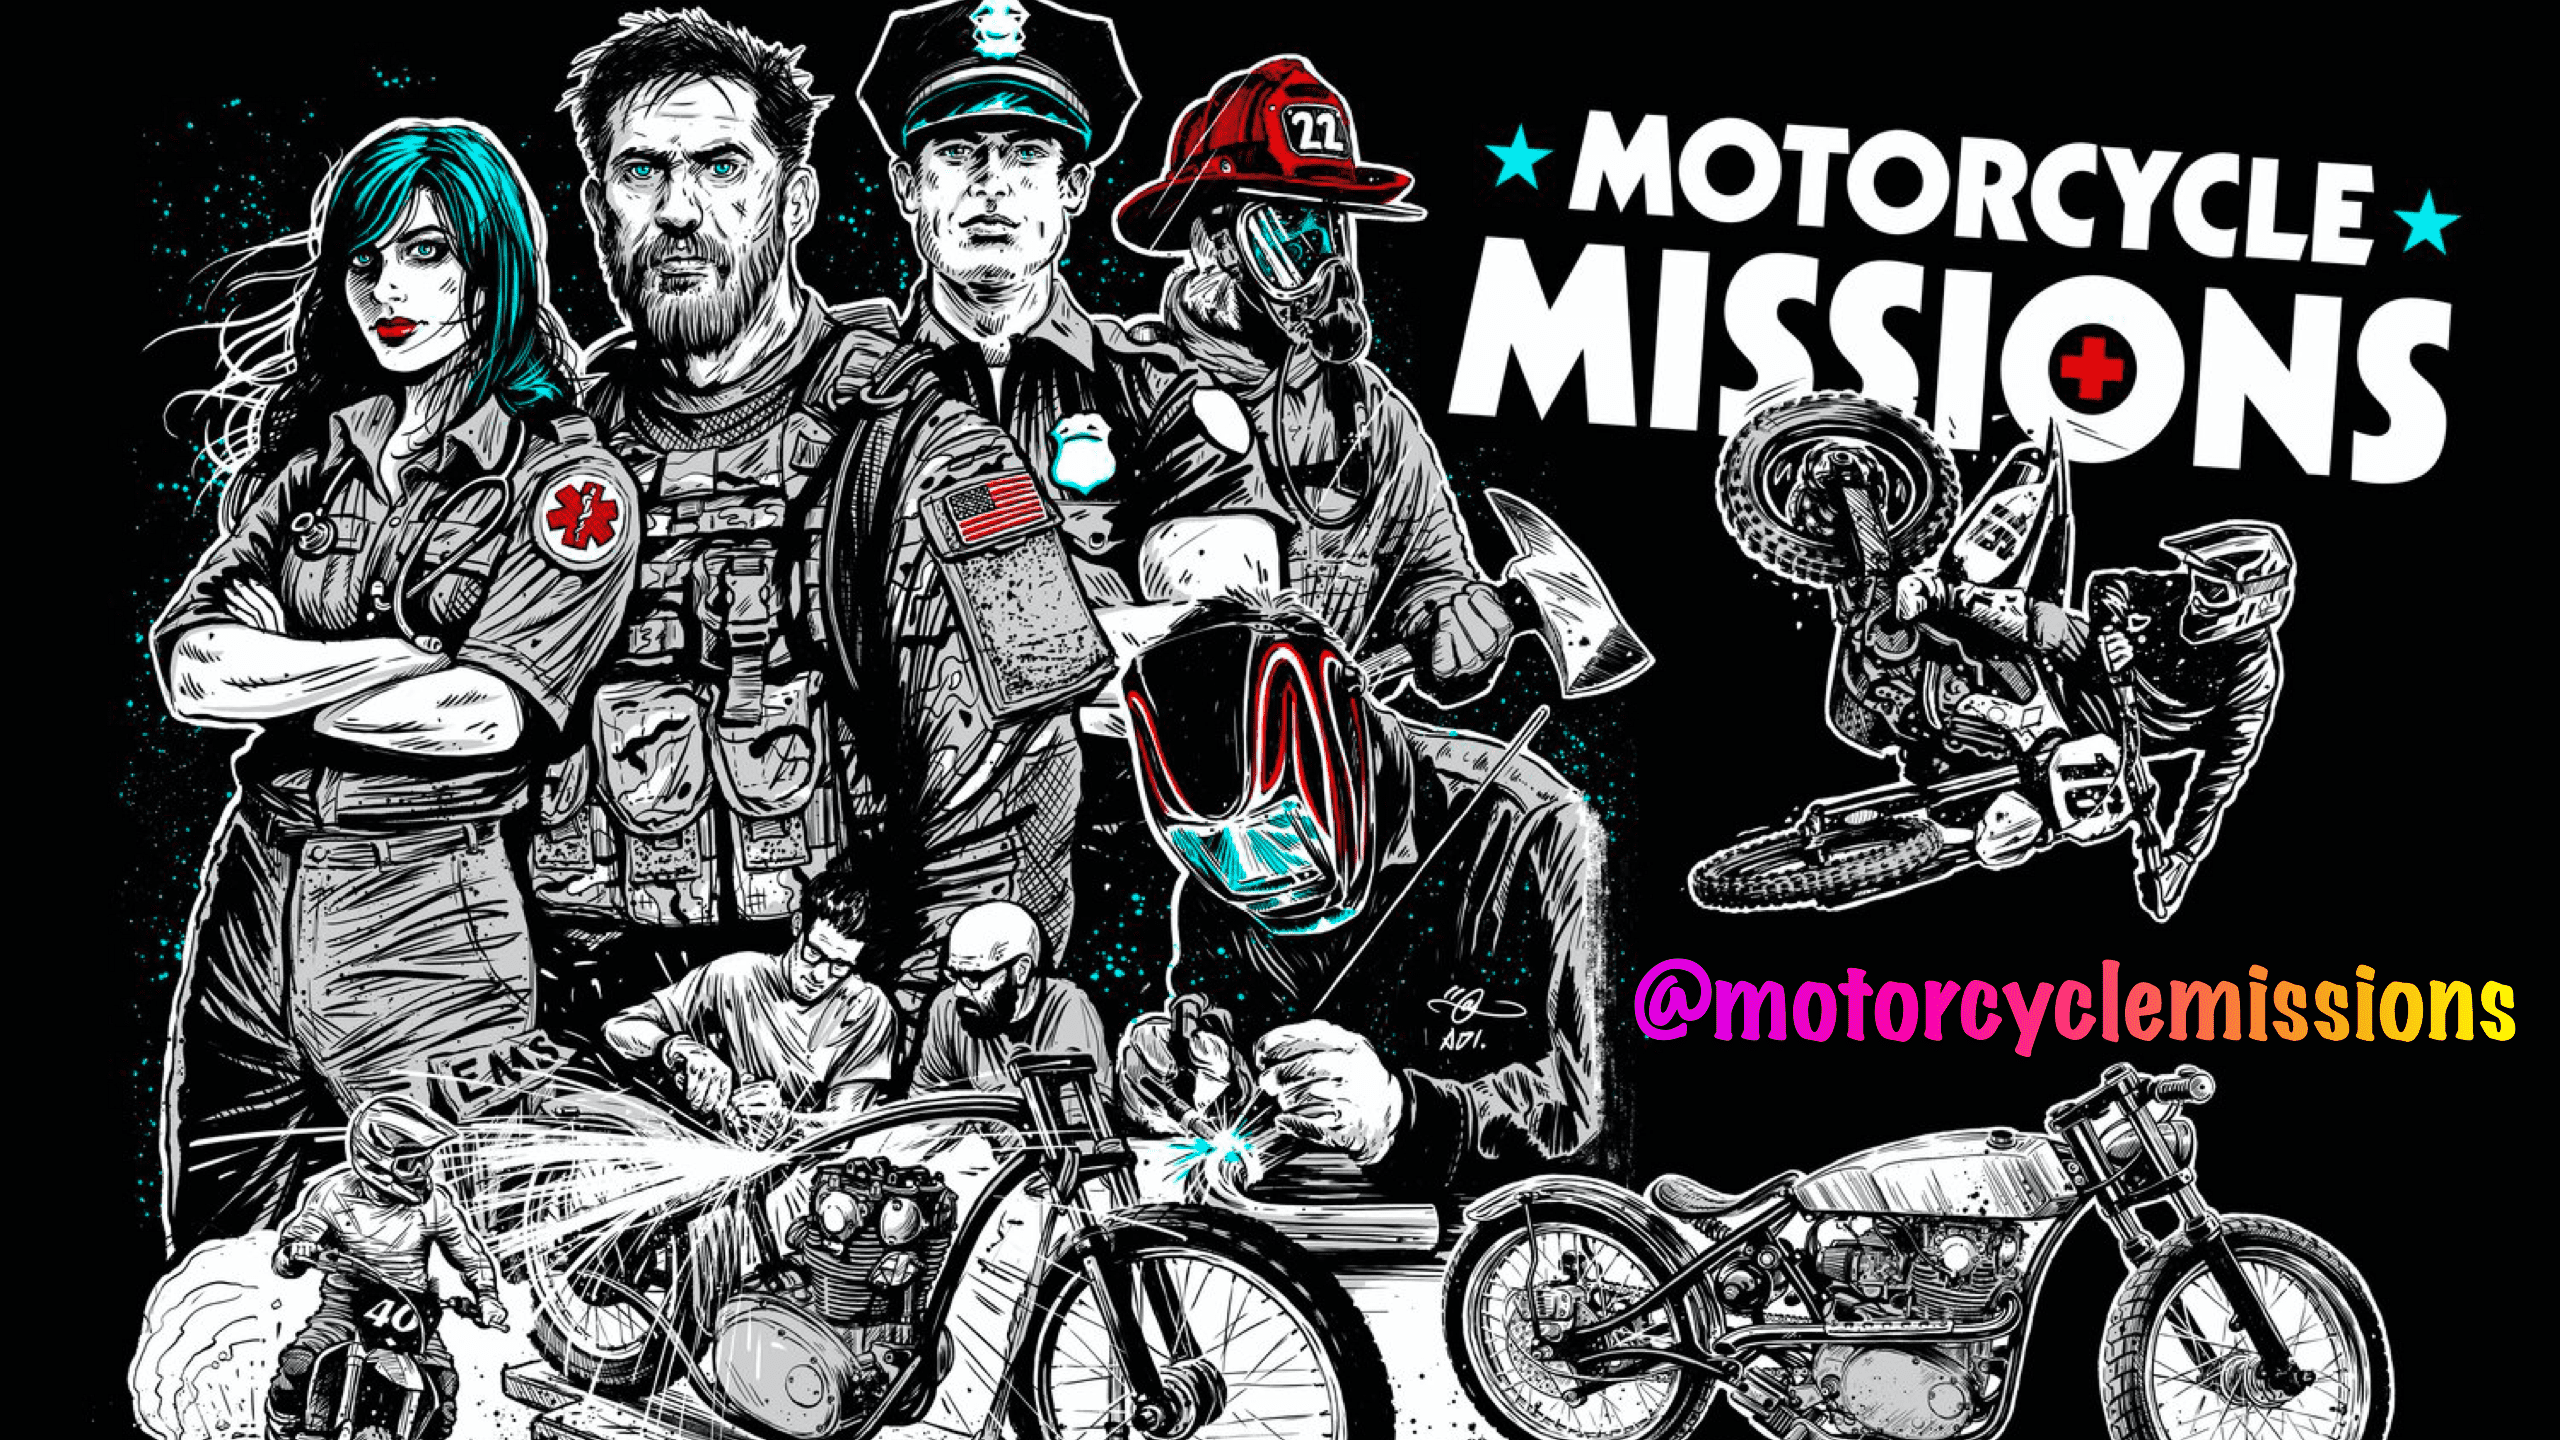 Motorcycle Mission